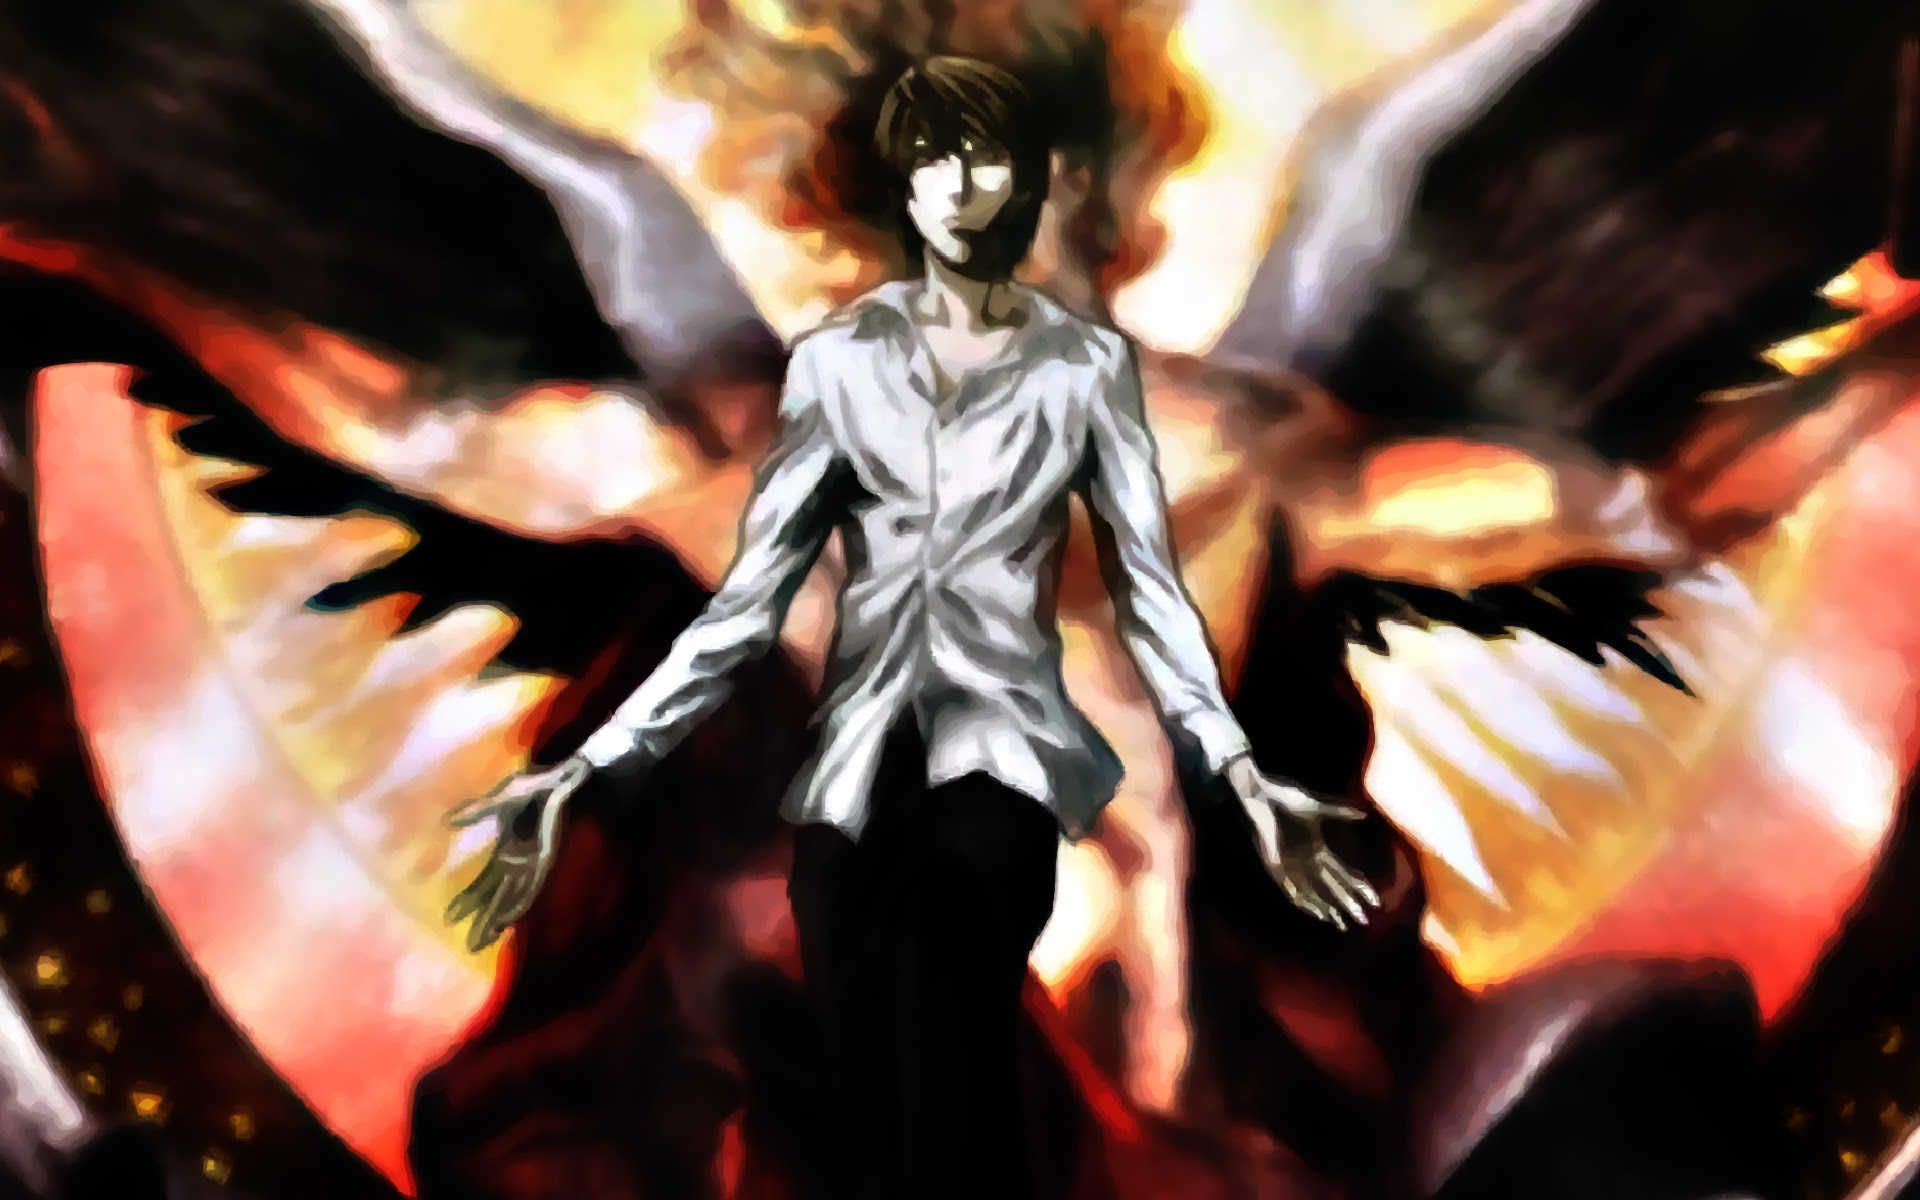 Death Note Light Angels Yagami Light 1920x1200 Wallpaper Anime